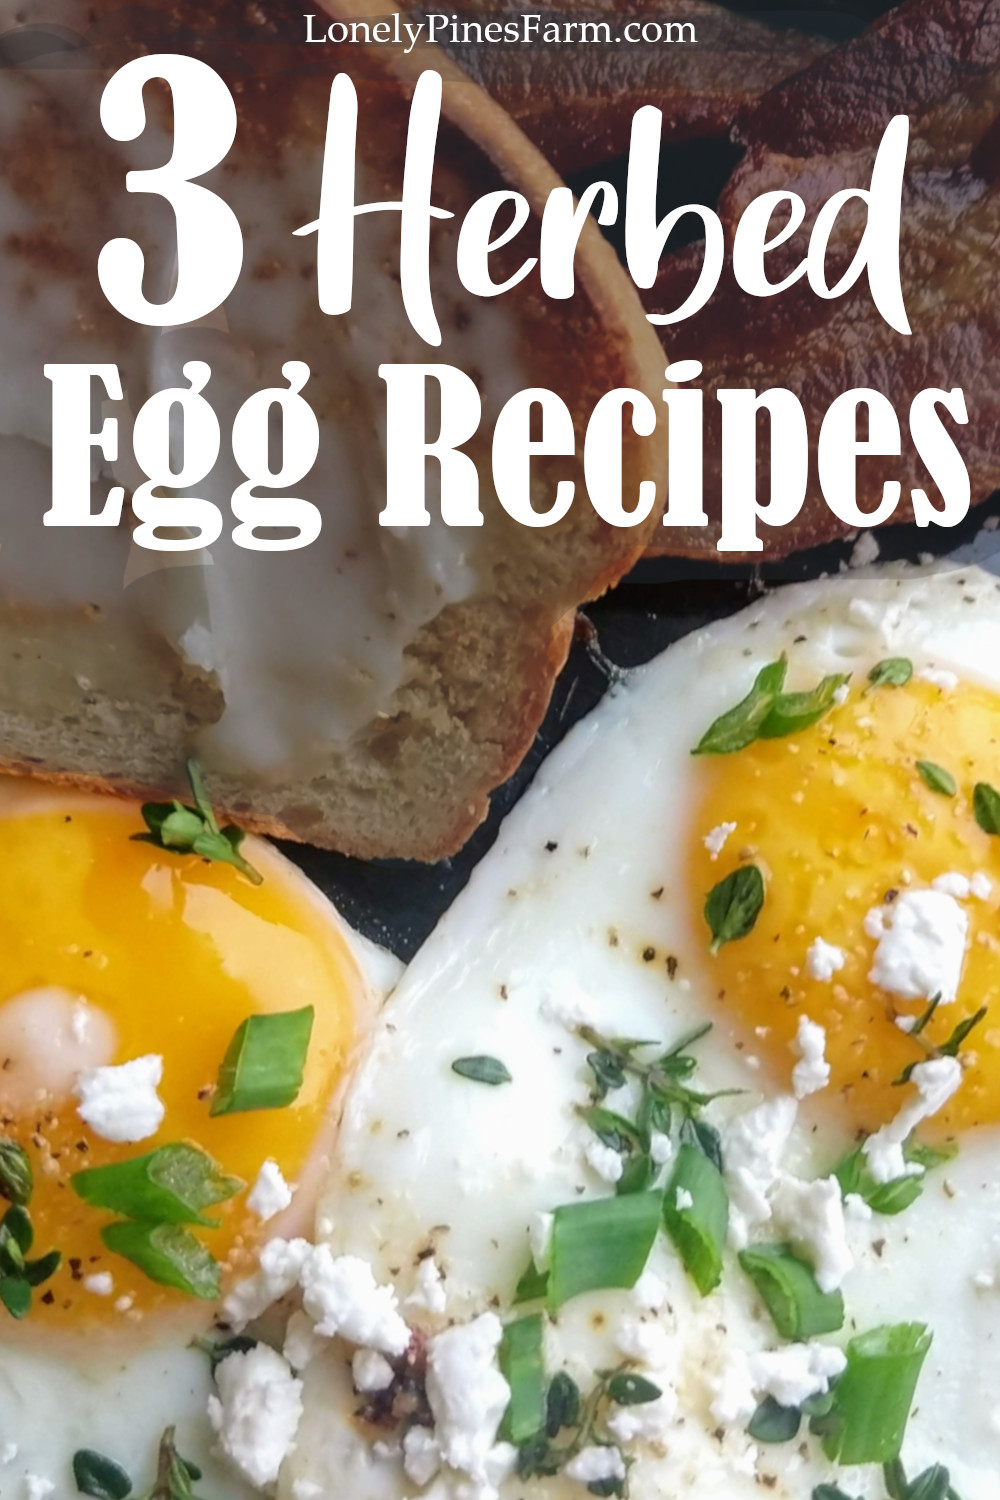 Boring breakfast? Time to spice it up! With these simple recipes & a few fresh herbs, you can add loads of flavor to your morning eggs. Wake up your taste buds & greet the day!